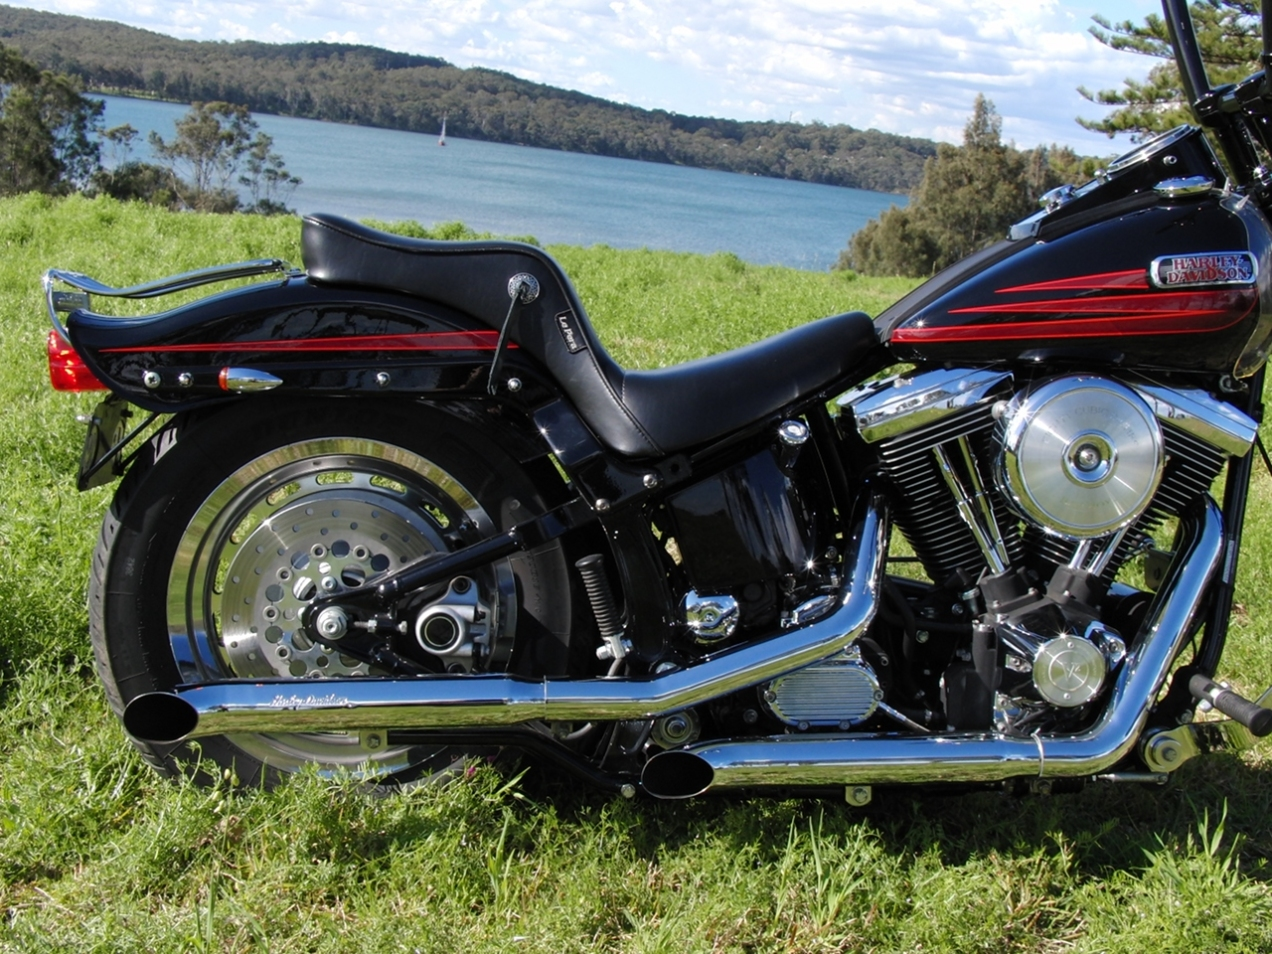 harley-davidson-softail-springer-1995-bad-boy-FXSTSB-evolution-1340-carlini-evil-apehangers-lepera-le-pera-cherokee-seat-jeremiah-watt-slotted-concho-joker-machine-mirrors-psalmistice_CIMG2842